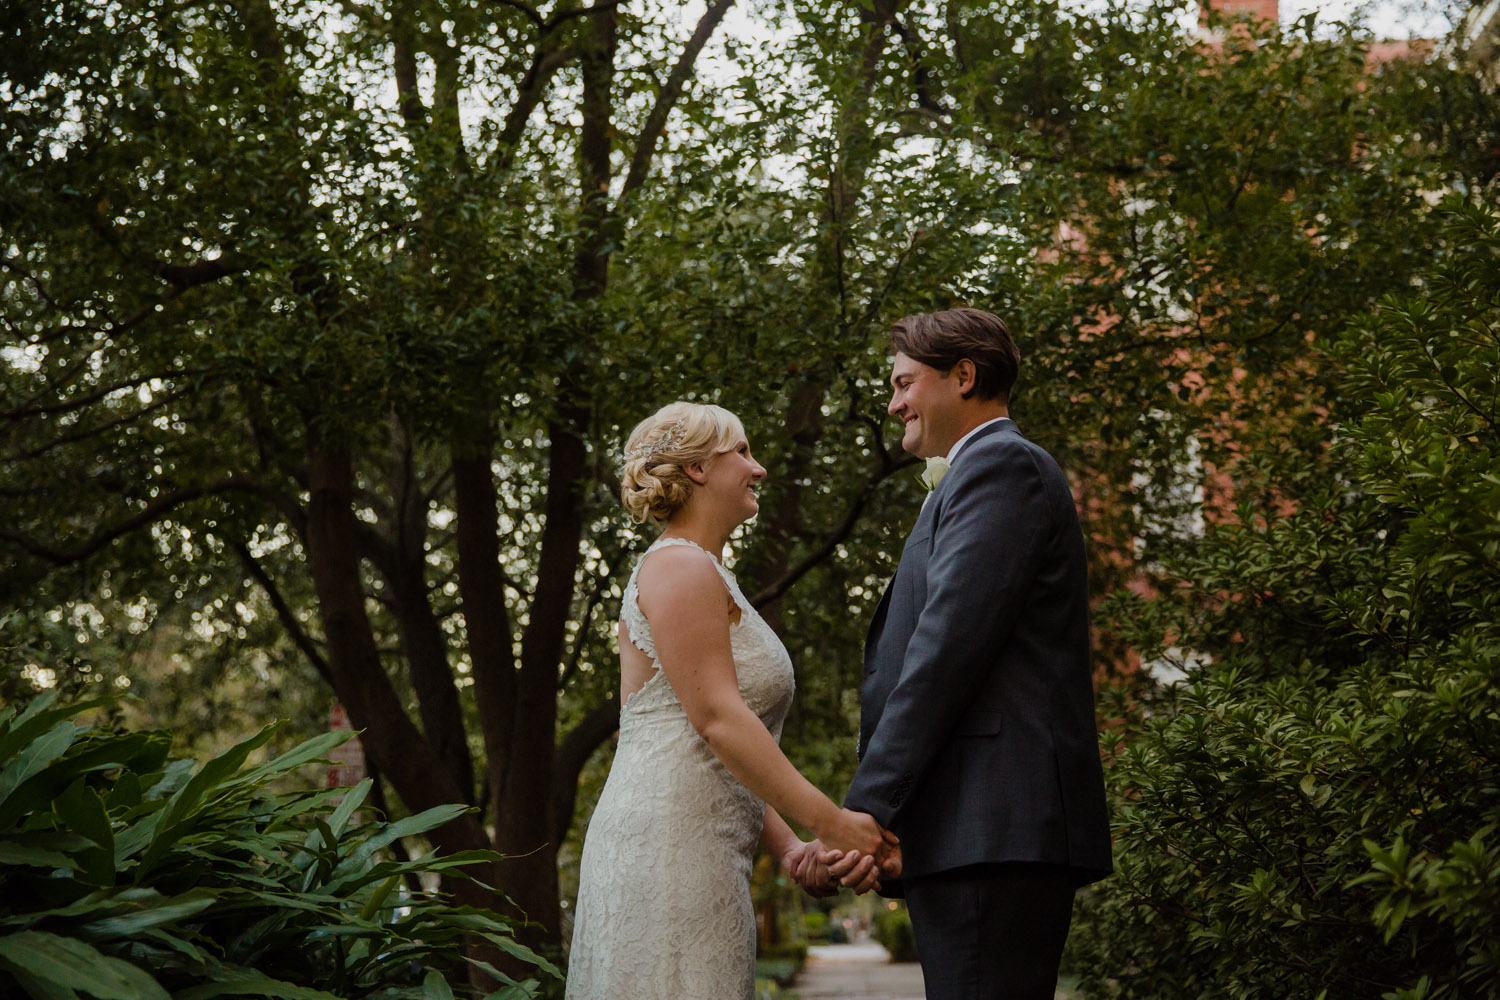 Atlanta Wedding Photographers Savannah Elopement Photographer Destination Photography_1054.jpg